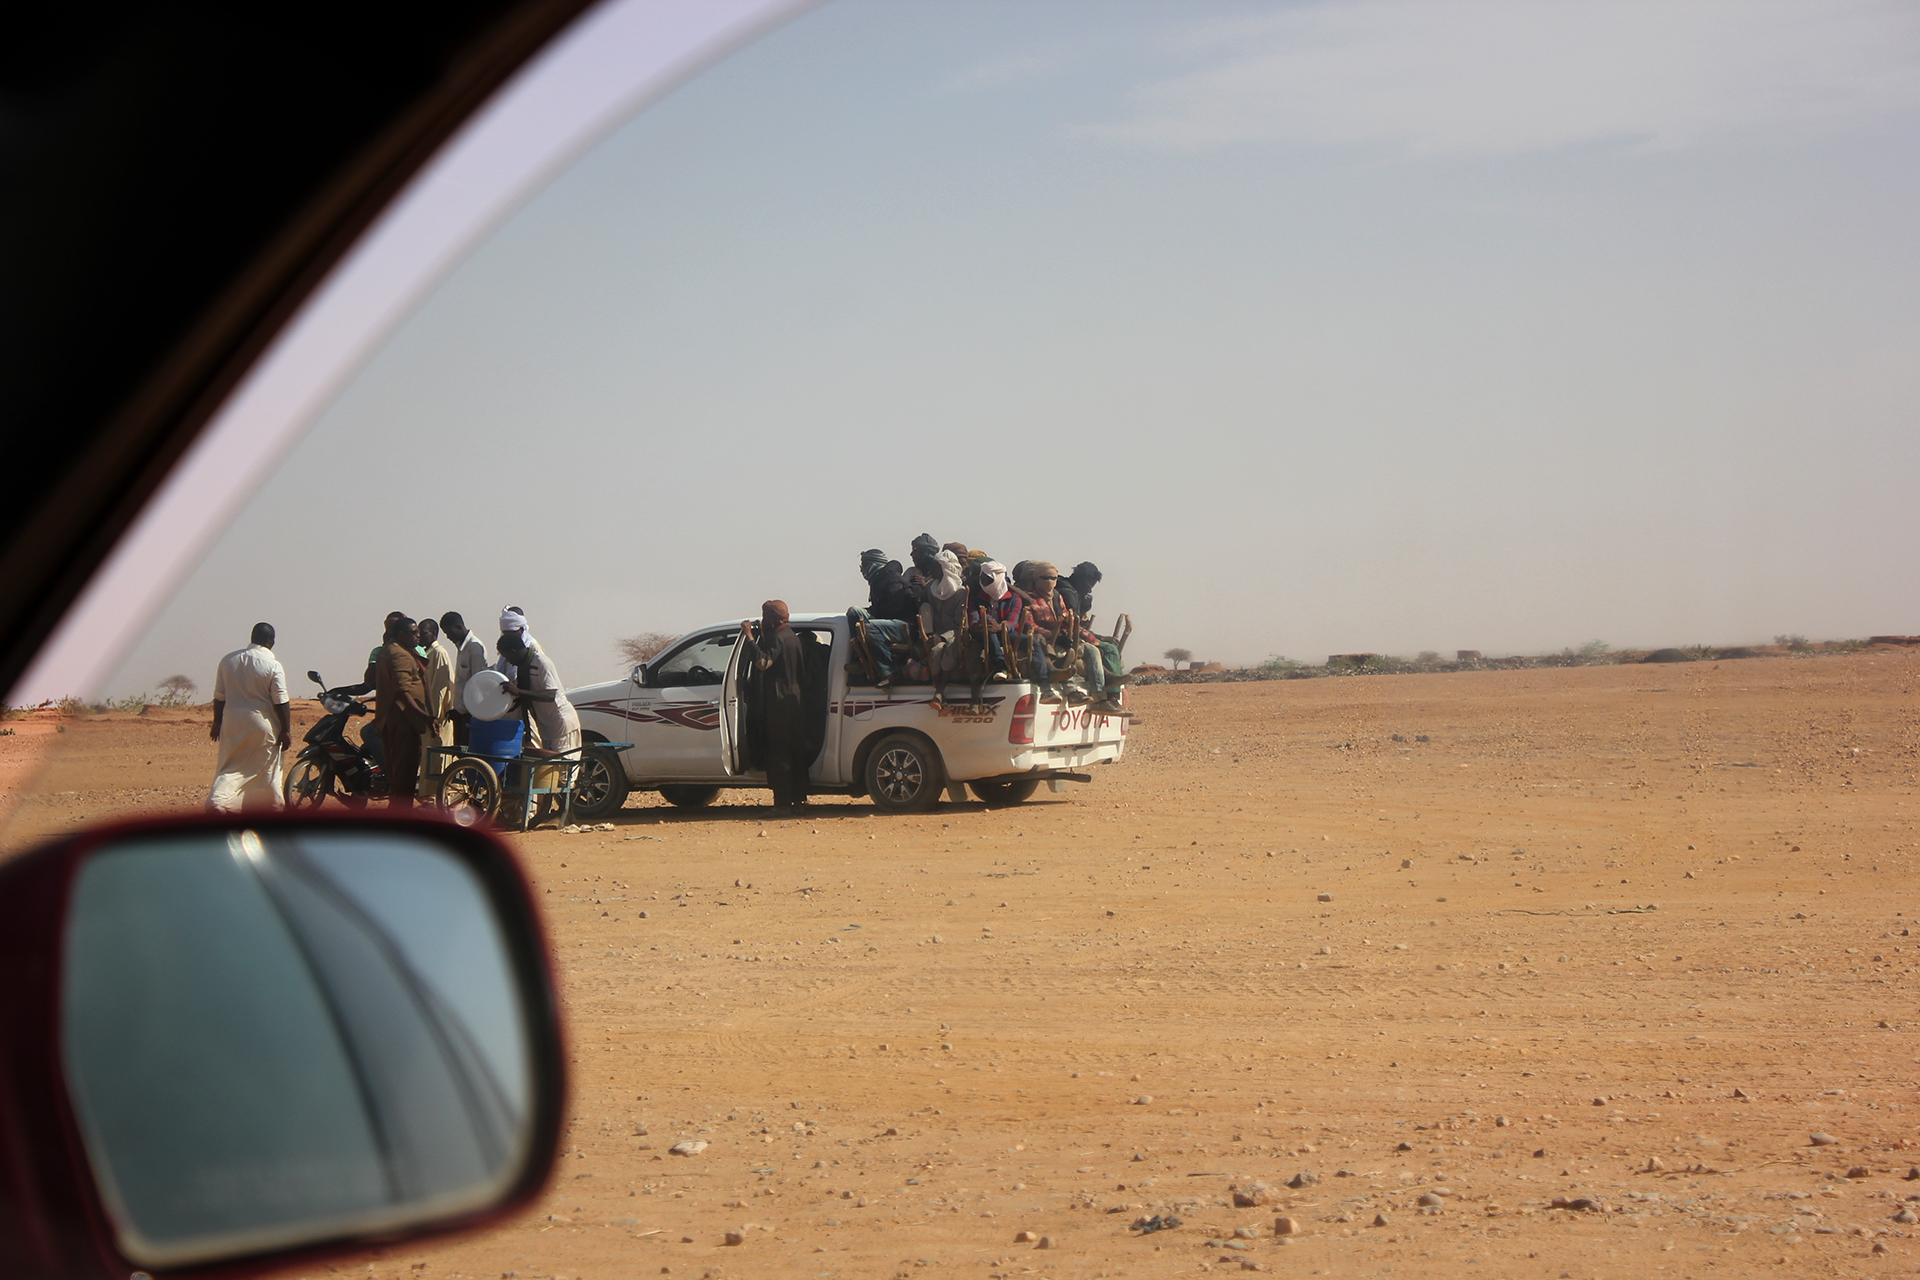 Migrants load into the back of a pickup at a checkpoint outside of Agadez, Niger before beginning the long journey across the Sahara to Libya, March 2018.